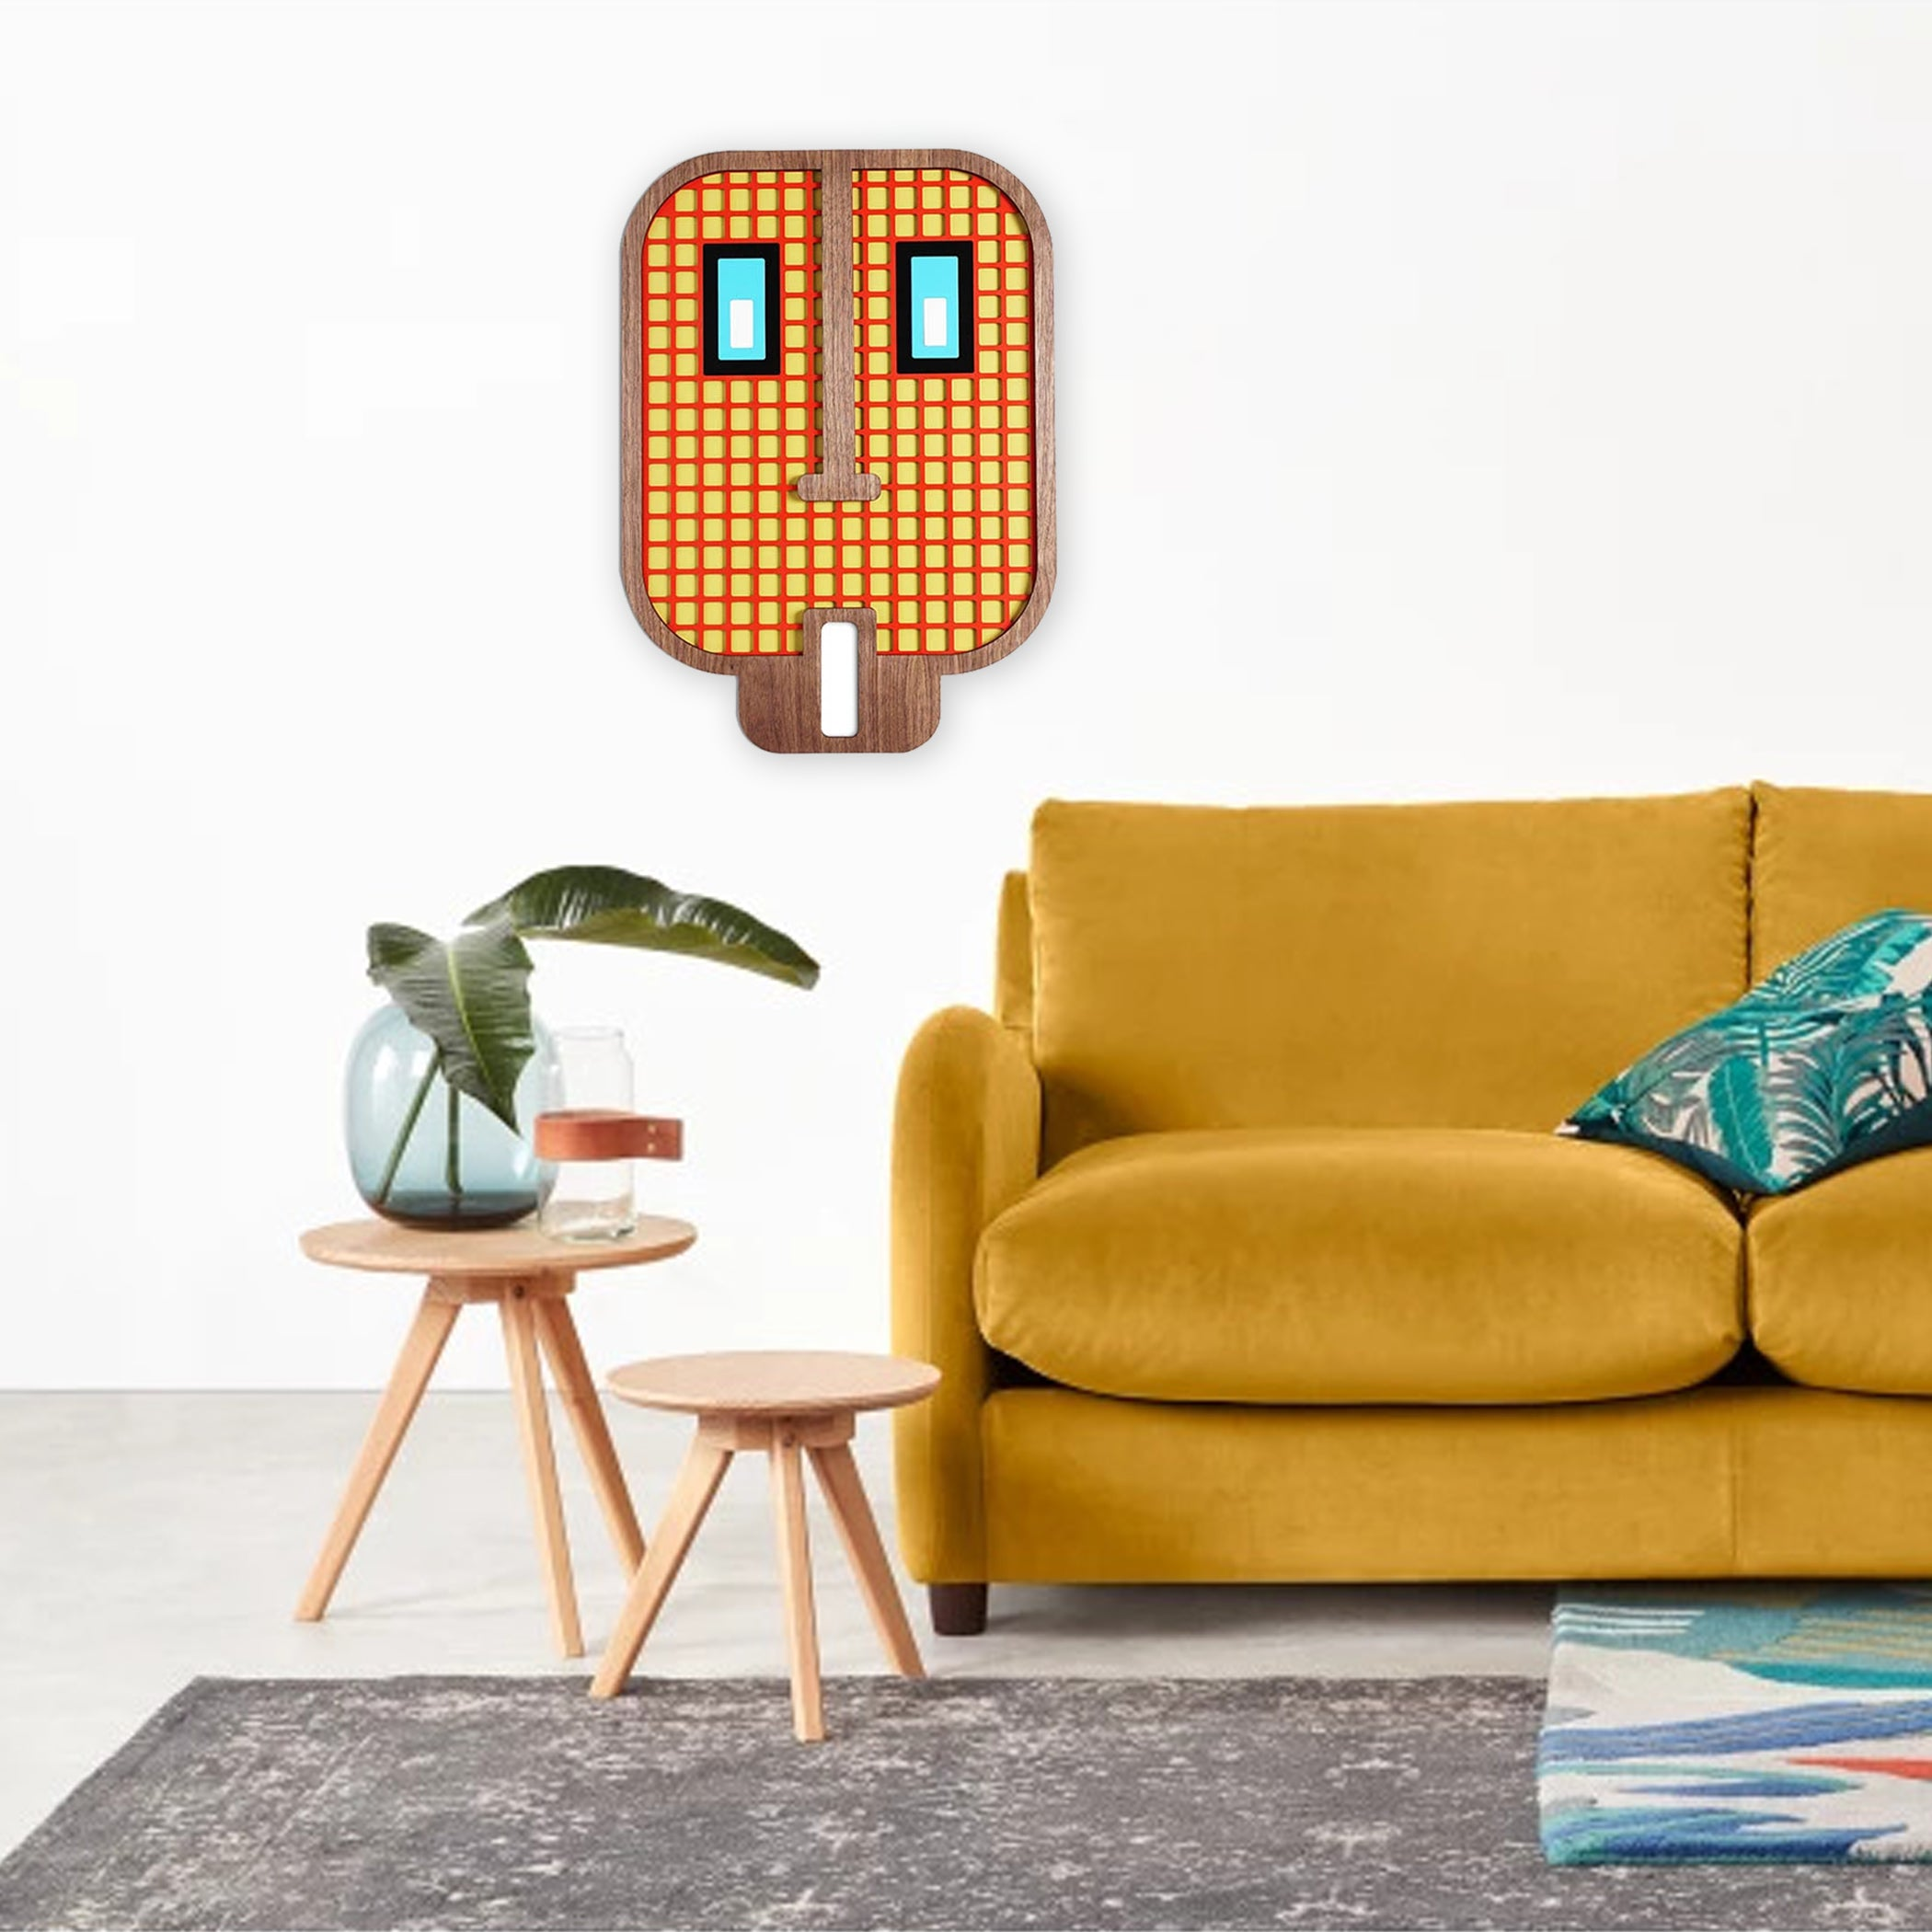 Emoji Decals with Wooden Wall Art